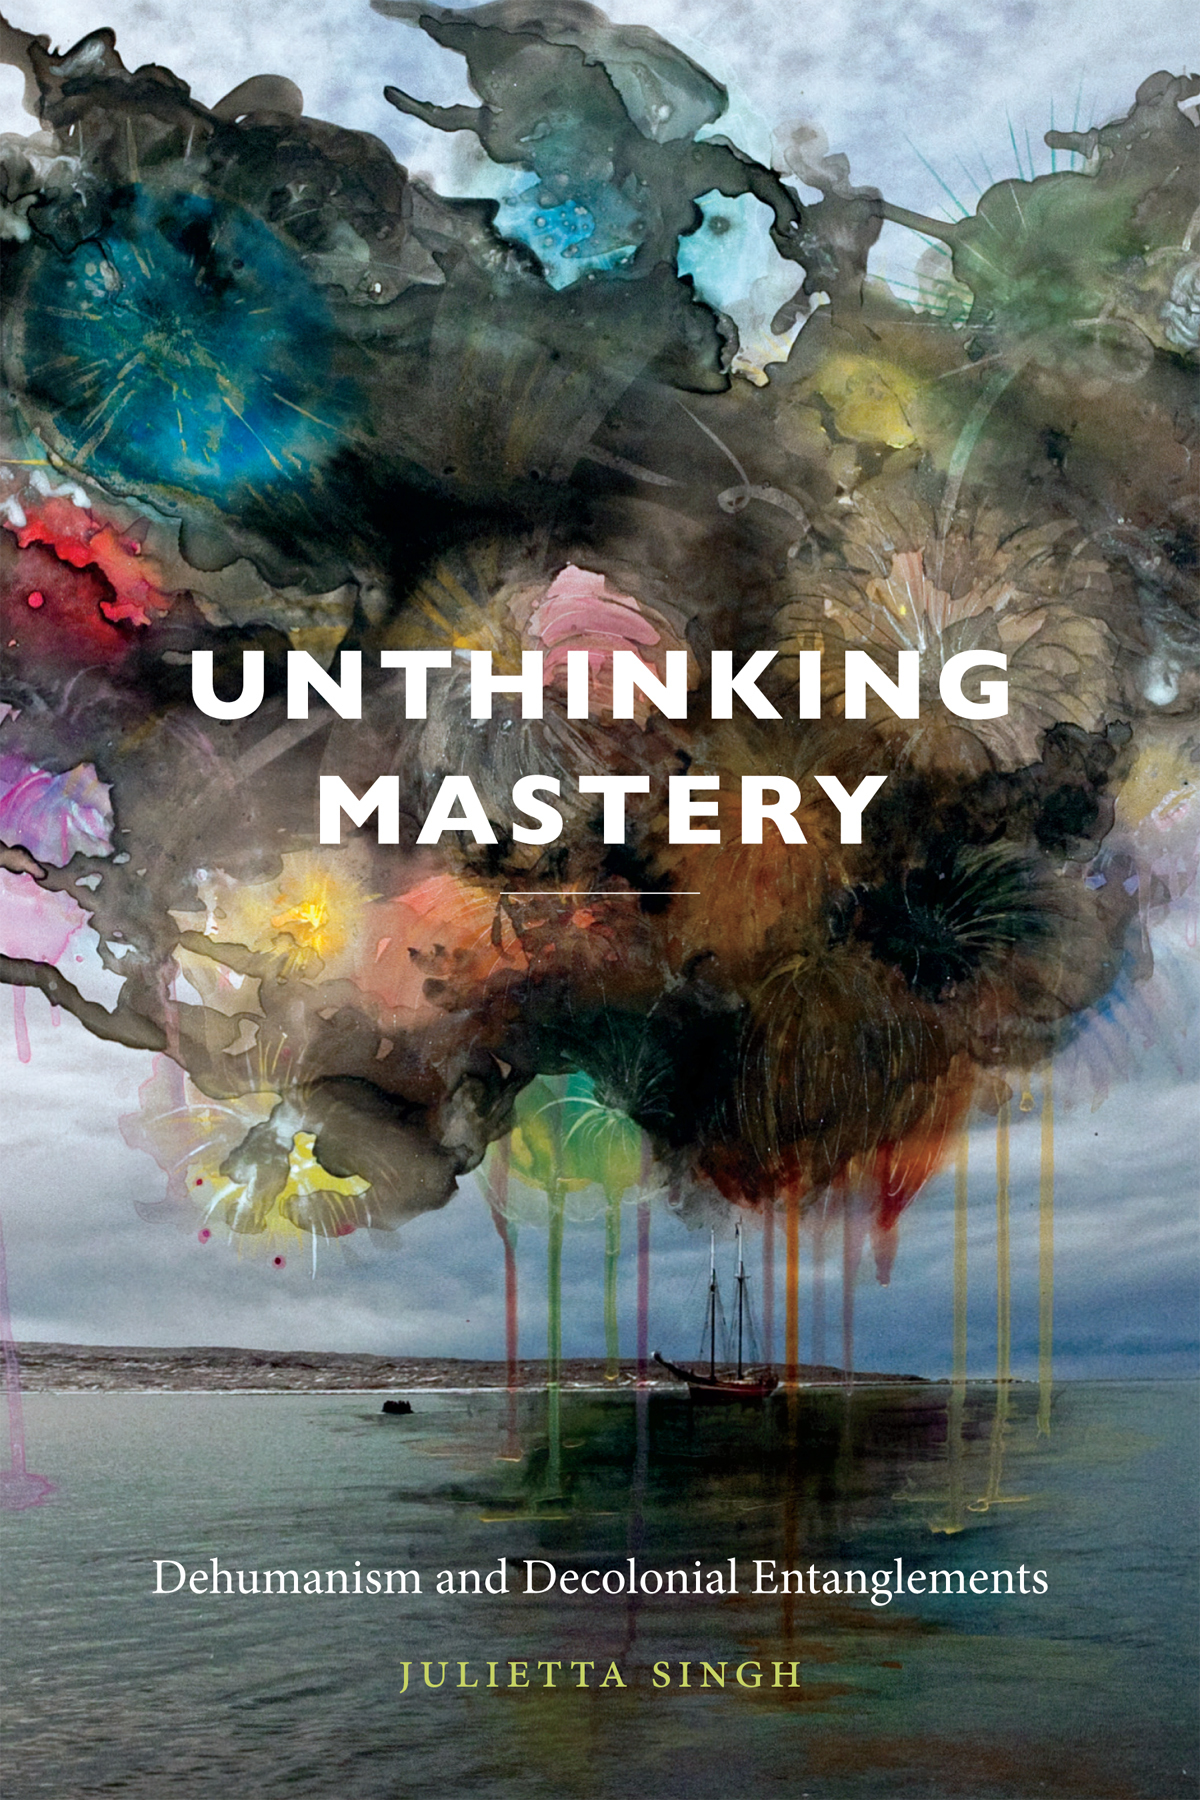 Unthinking Mastery Dehumanism and Decolonial Entanglements